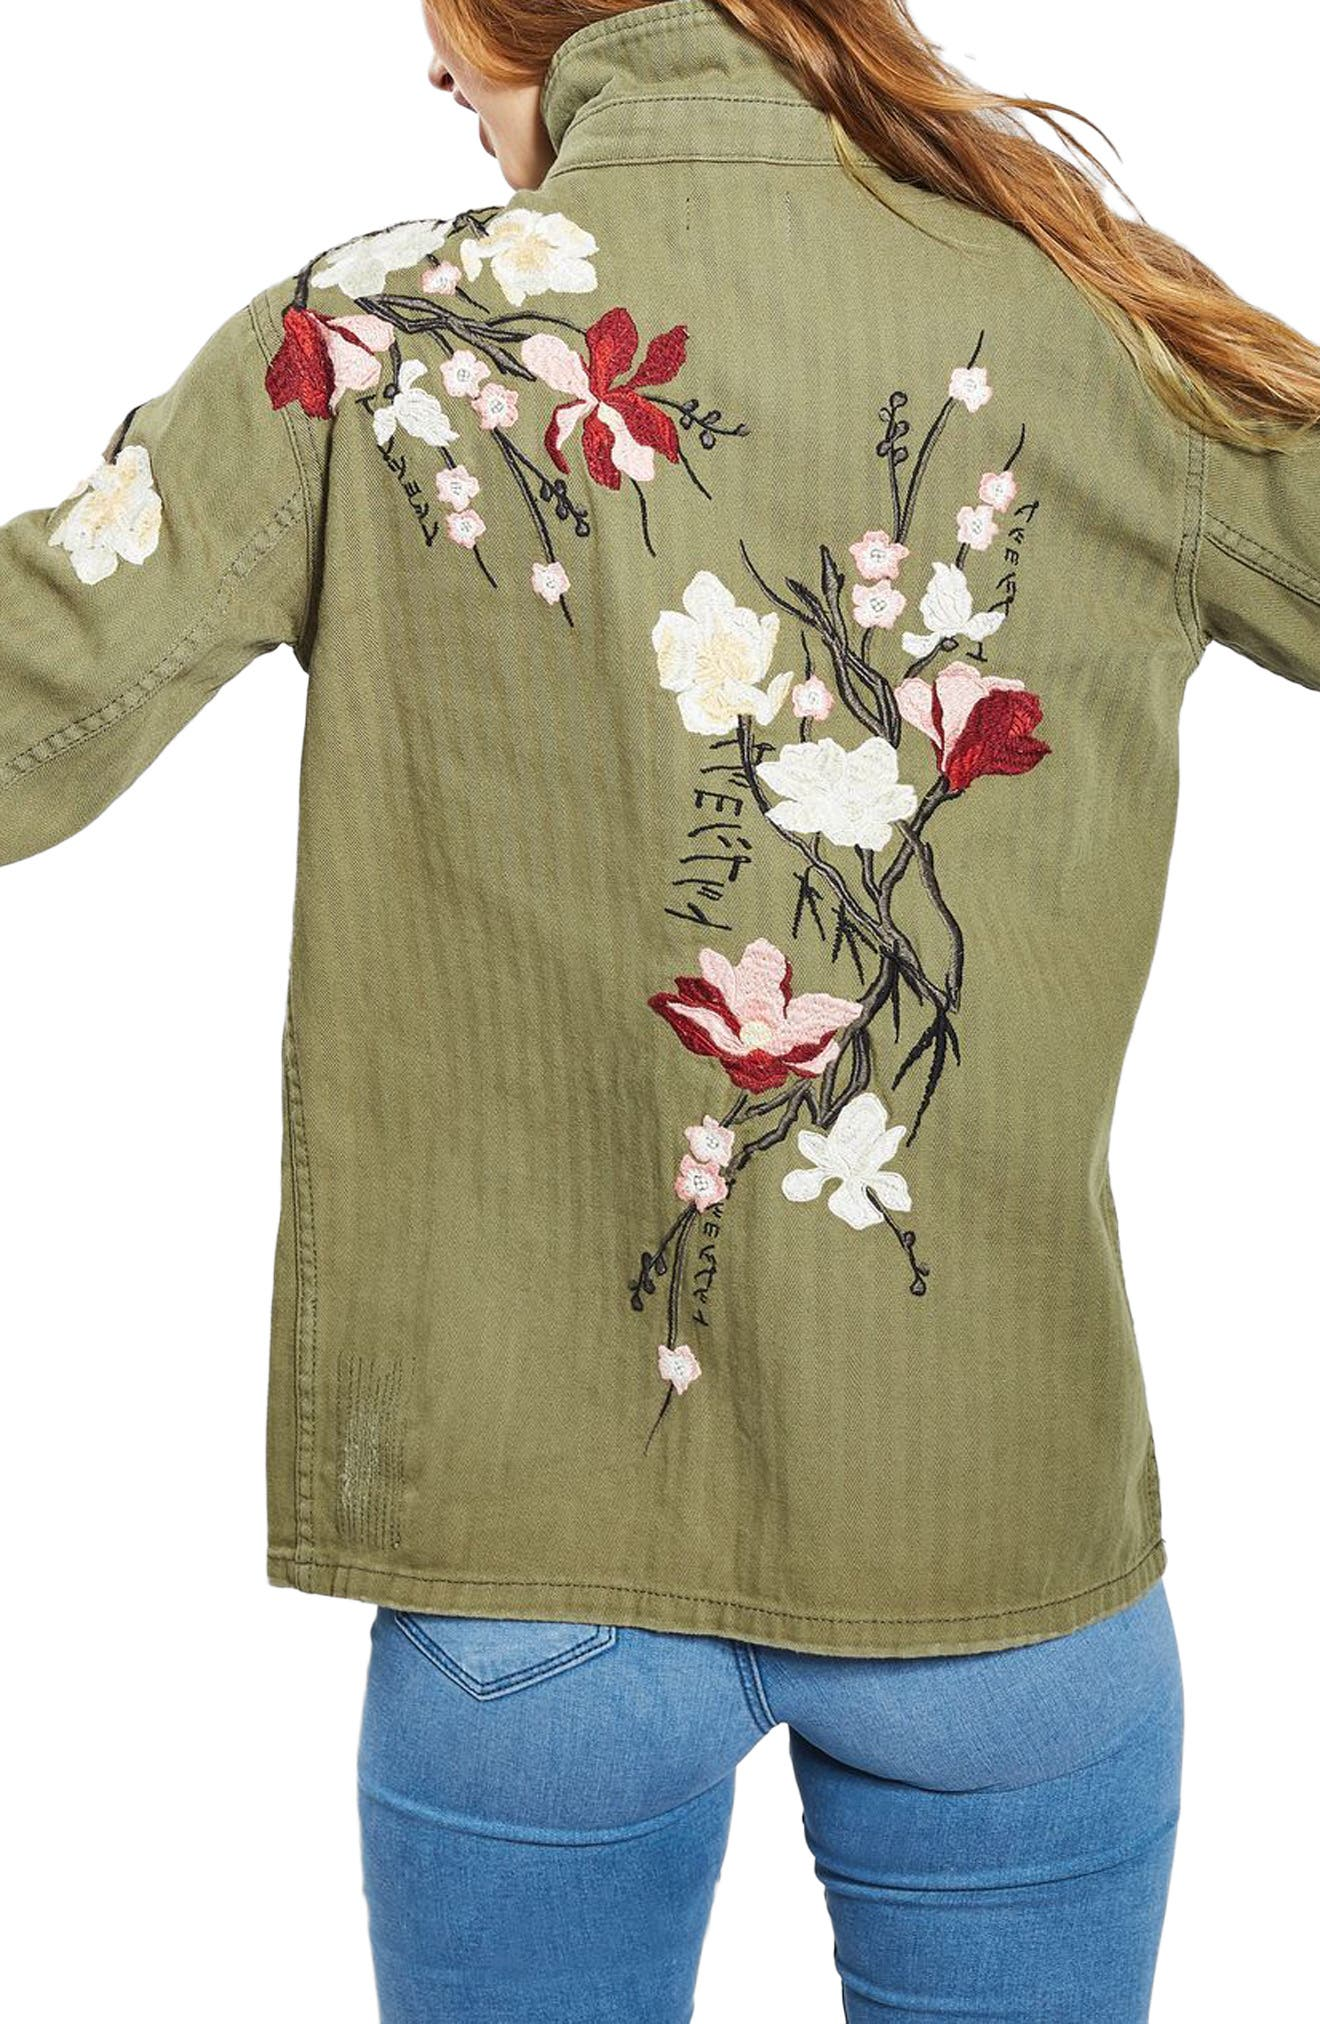 Embroidered Army Shirt Jacket,                             Alternate thumbnail 2, color,                             Olive